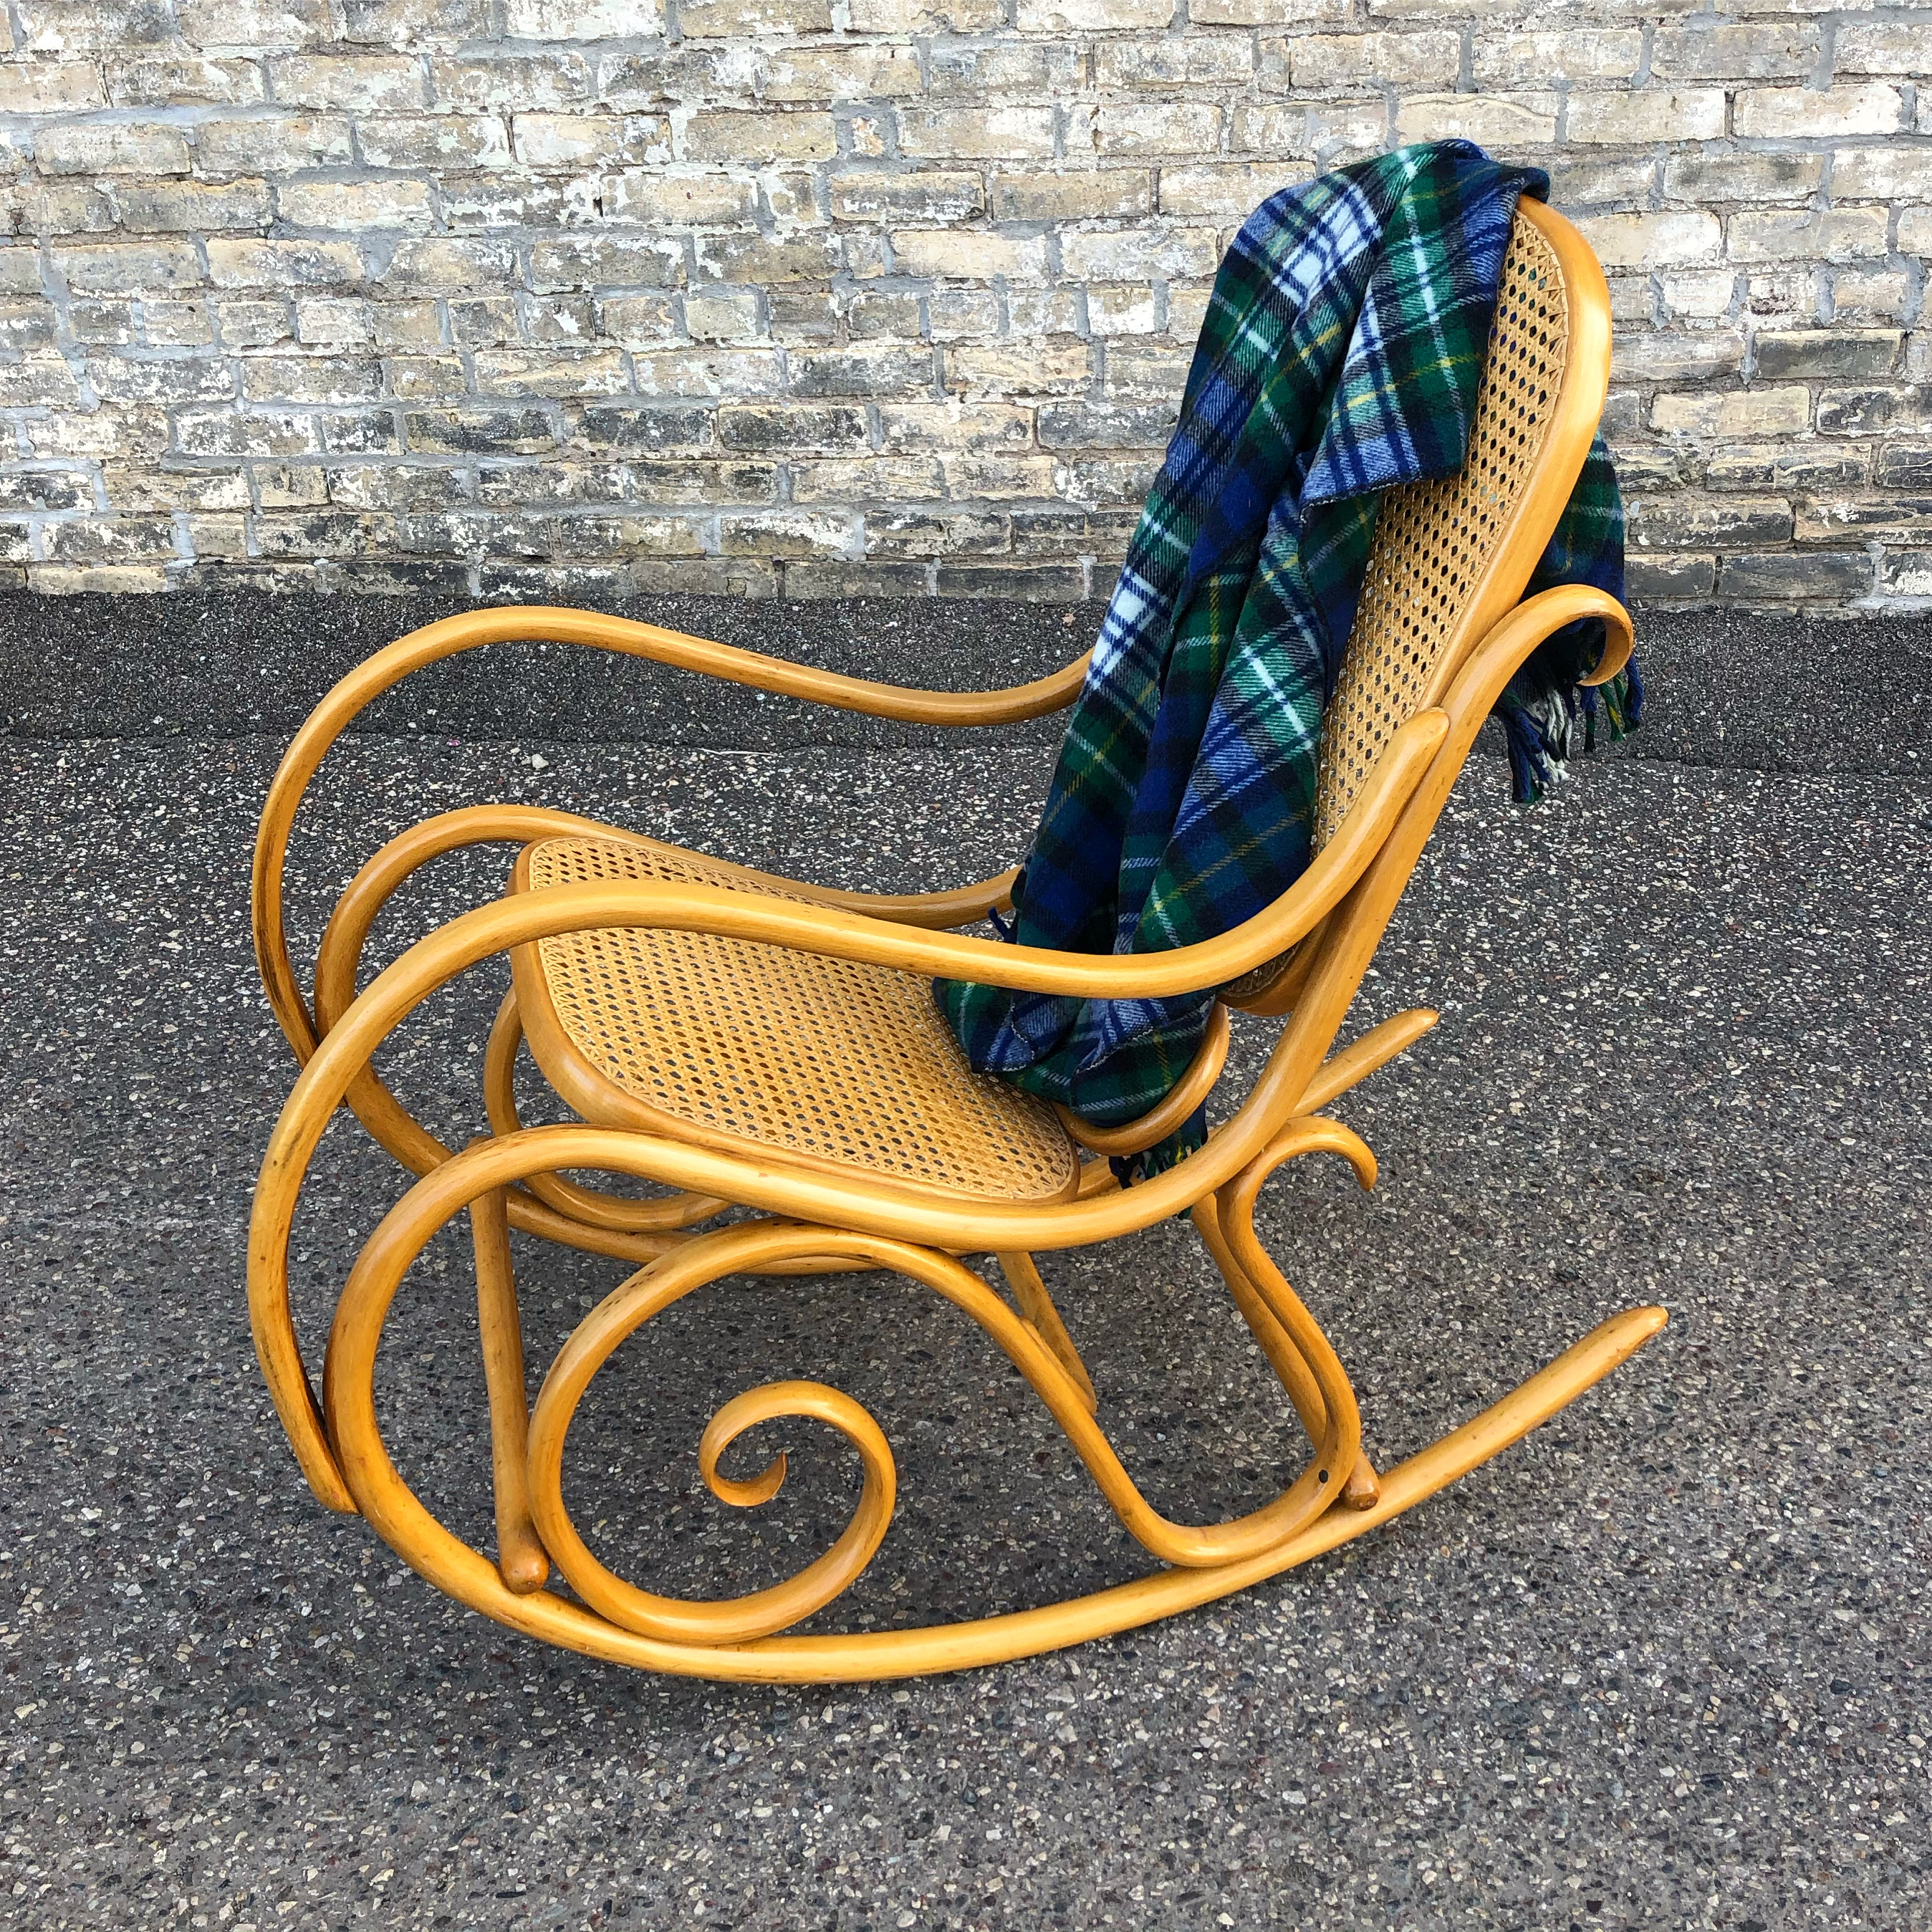 Thonet style bentwood rocking chair - made in Poland